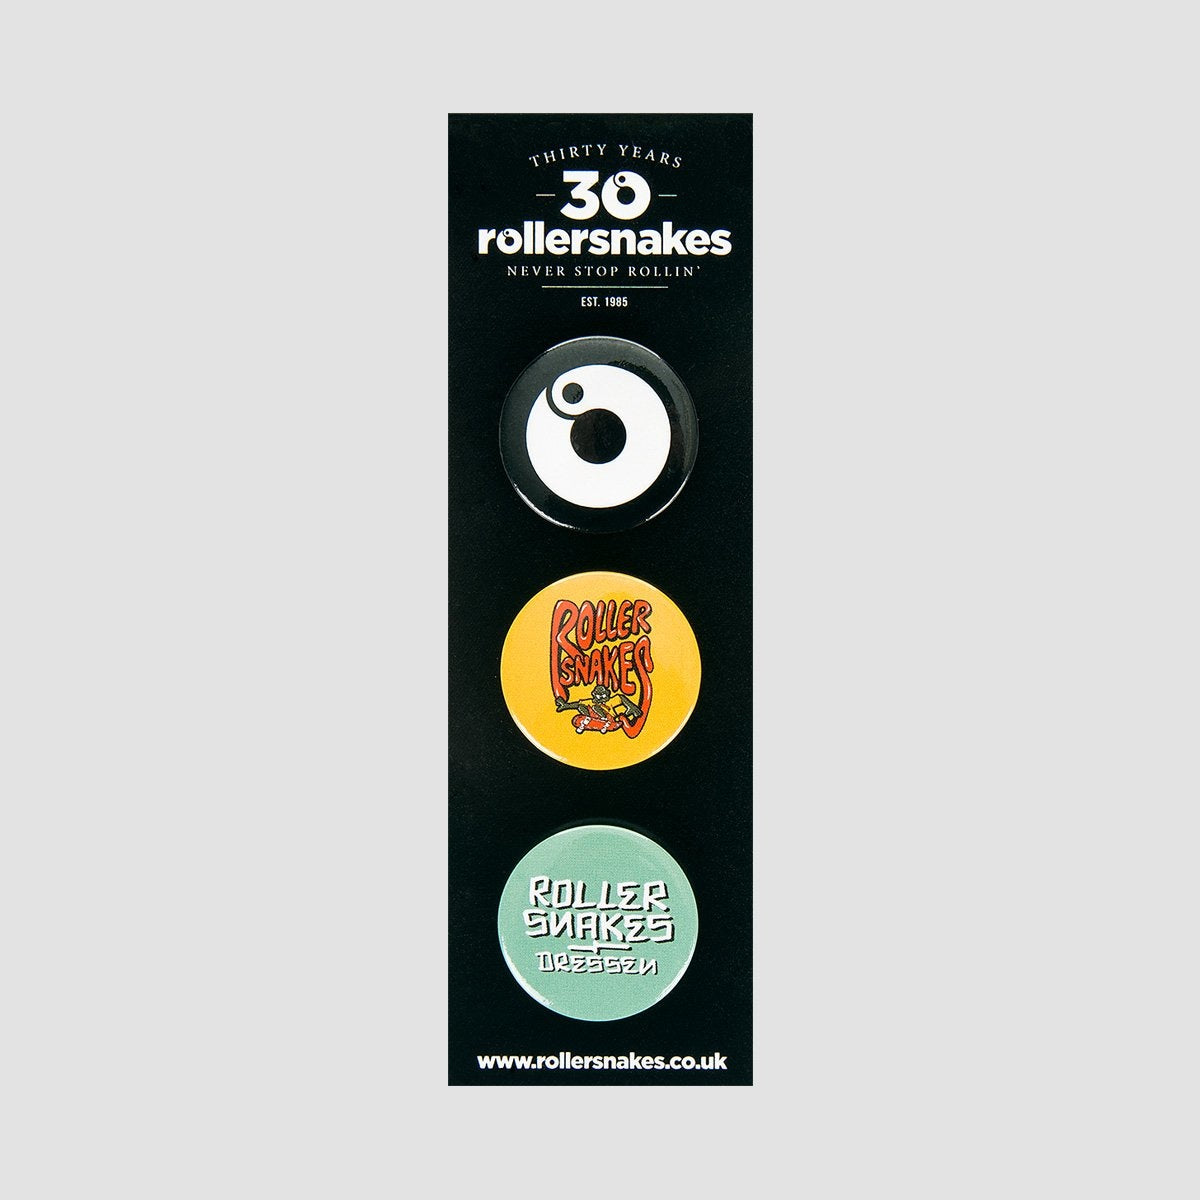 Rollersnakes 30th Anniversary Pin x3 - Accessories